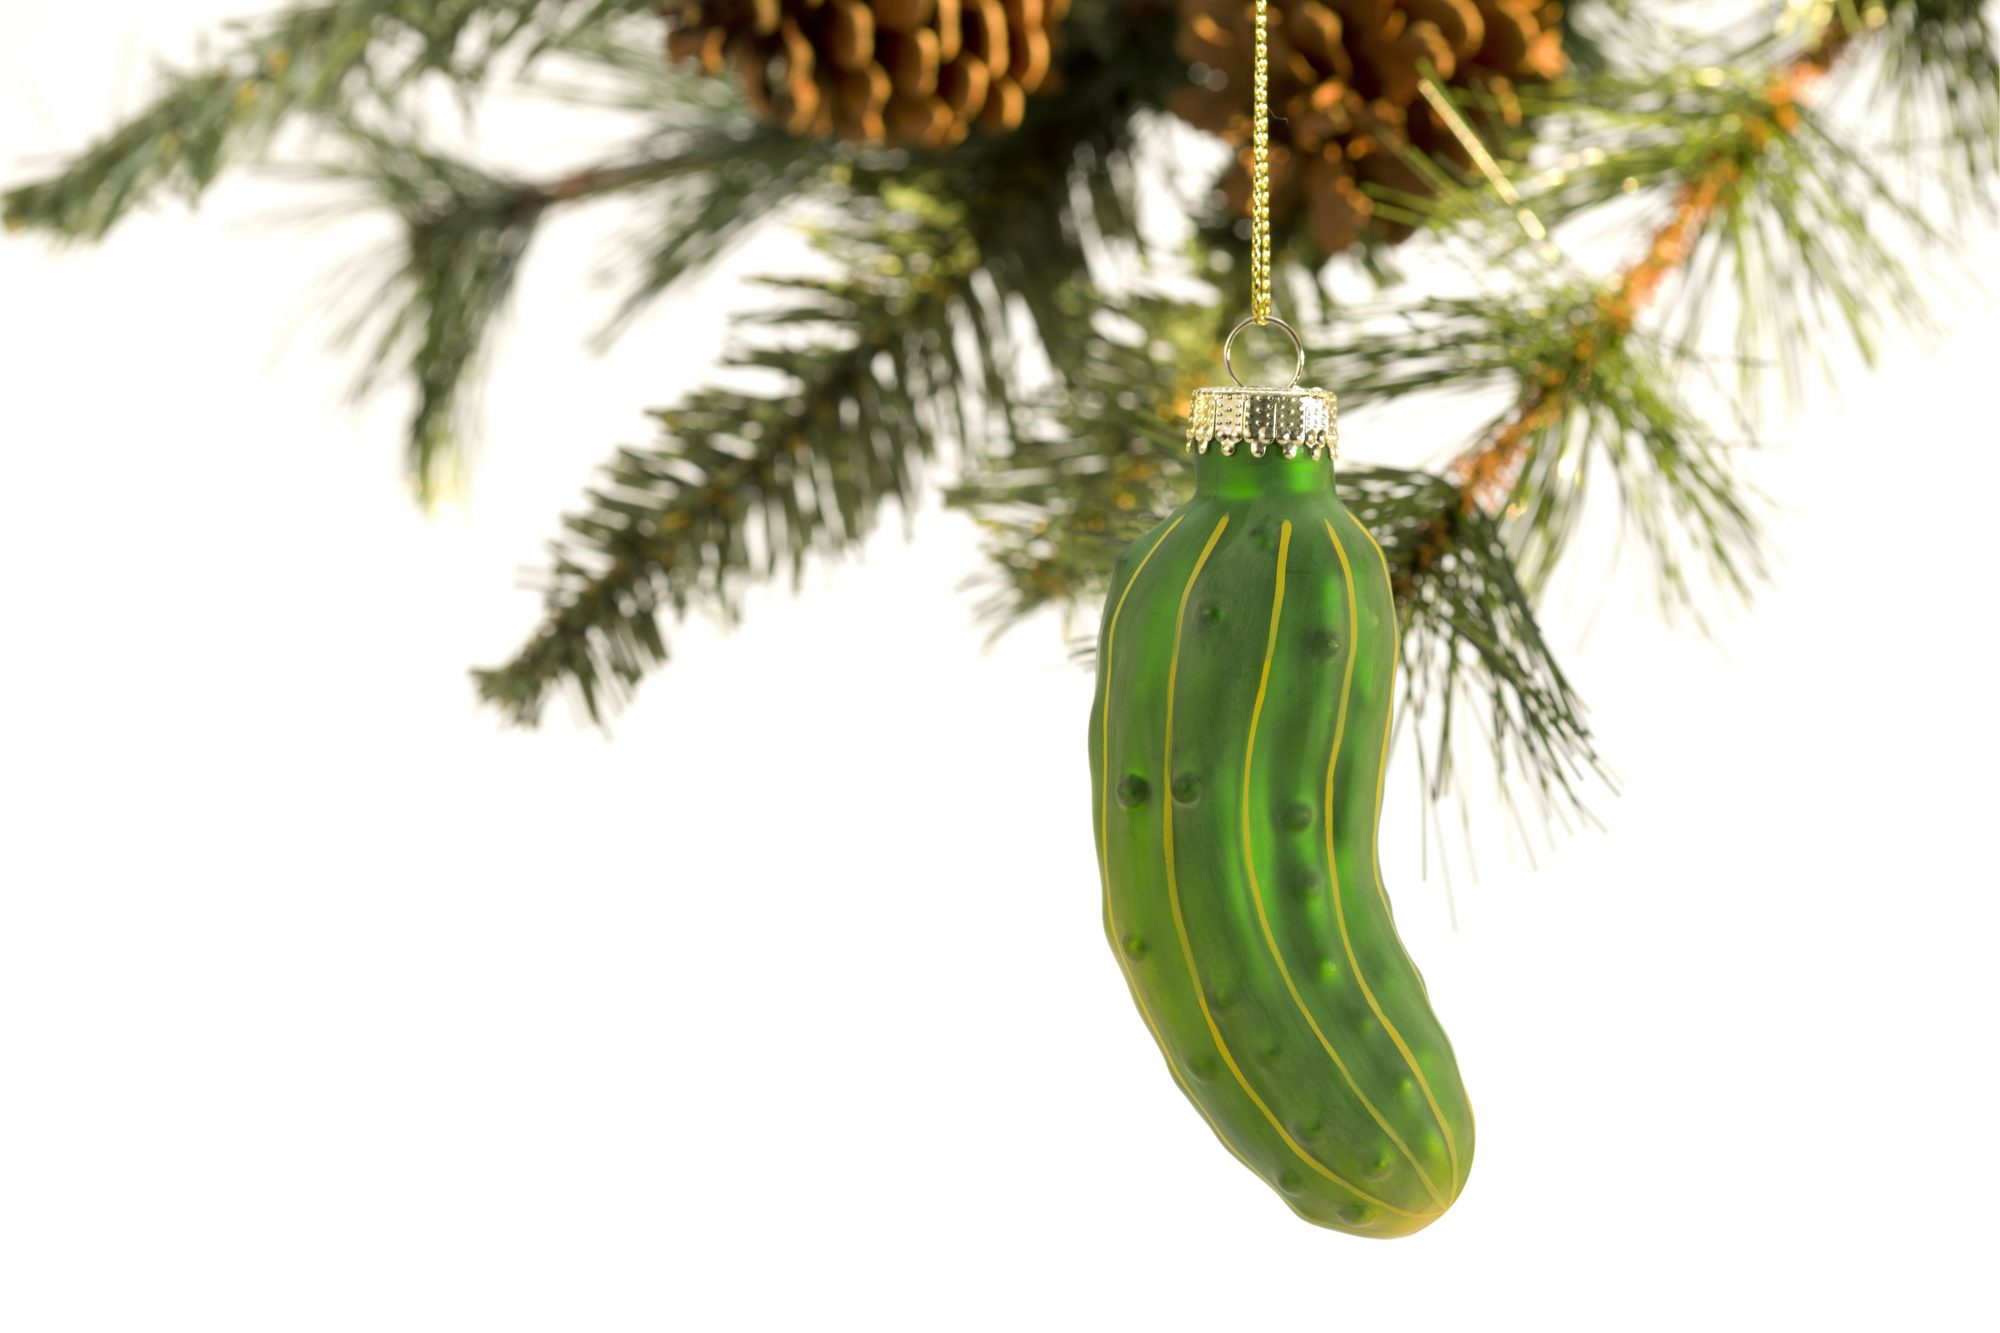 What Exactly is a Christmas Pickle?